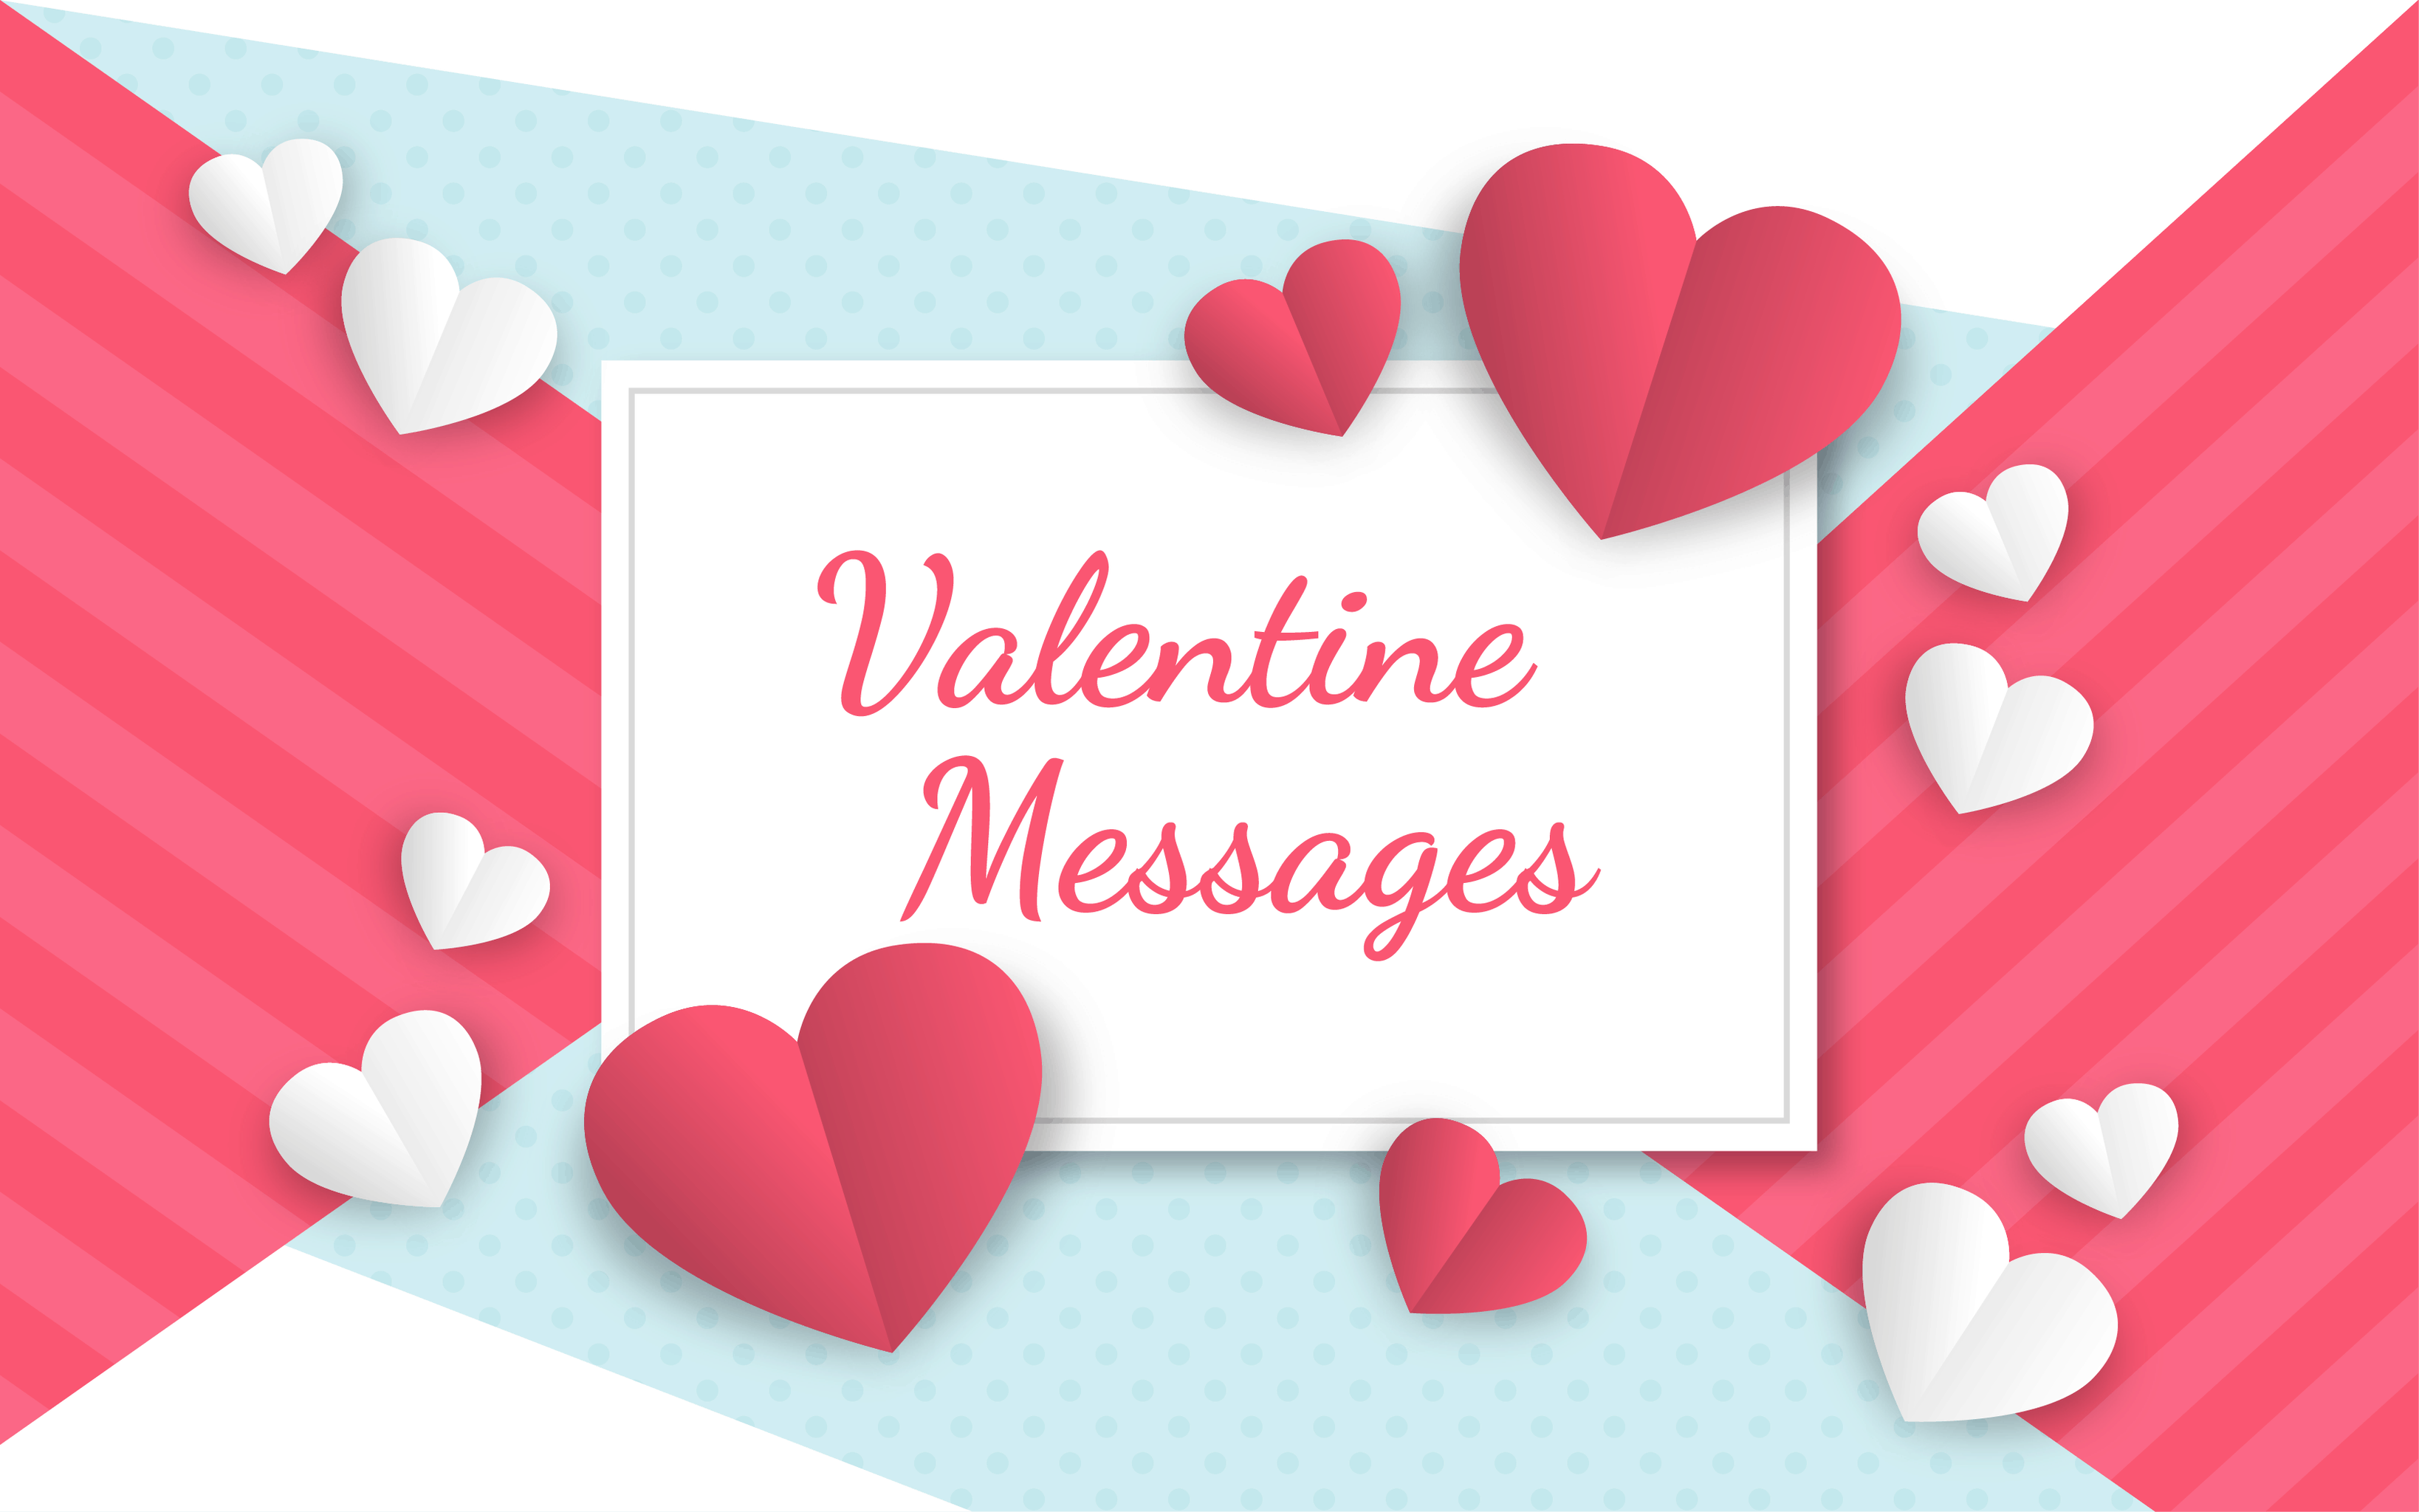 85 Romantic, Funny Valentine's Day Messages For Your Card 2020